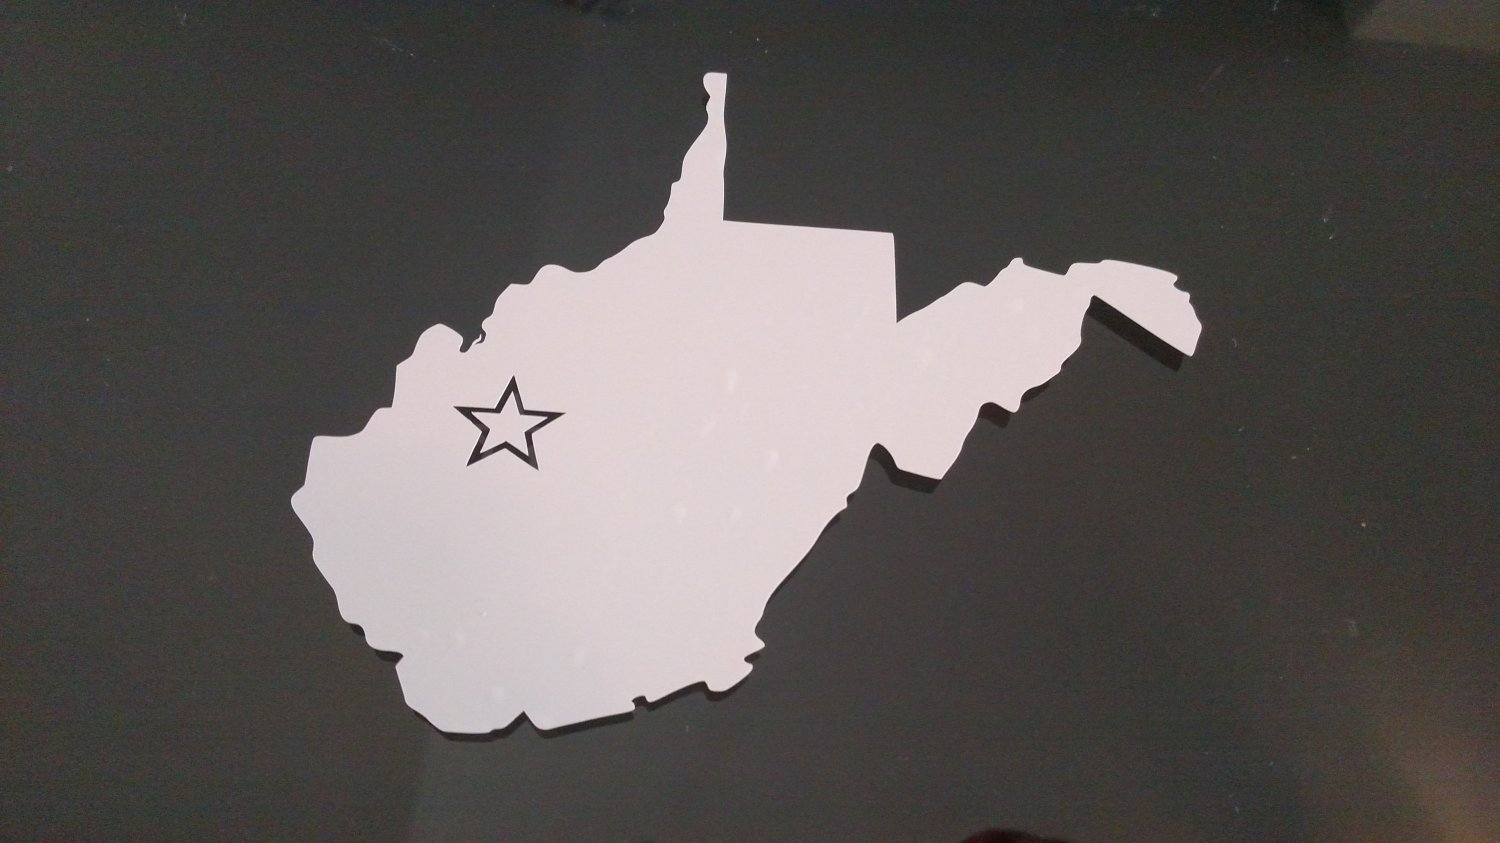 West Virginia Charleston Vinyl Car Window Bumper Sticker Decal State United States America USA